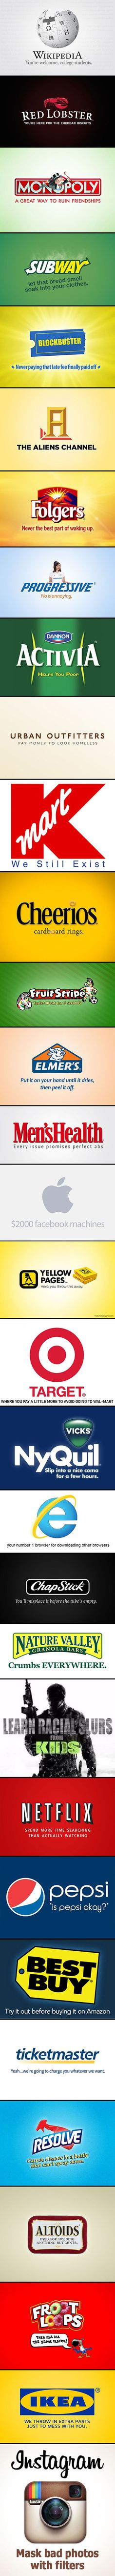 If company logos and slogans were honest, they would probably be something like these.